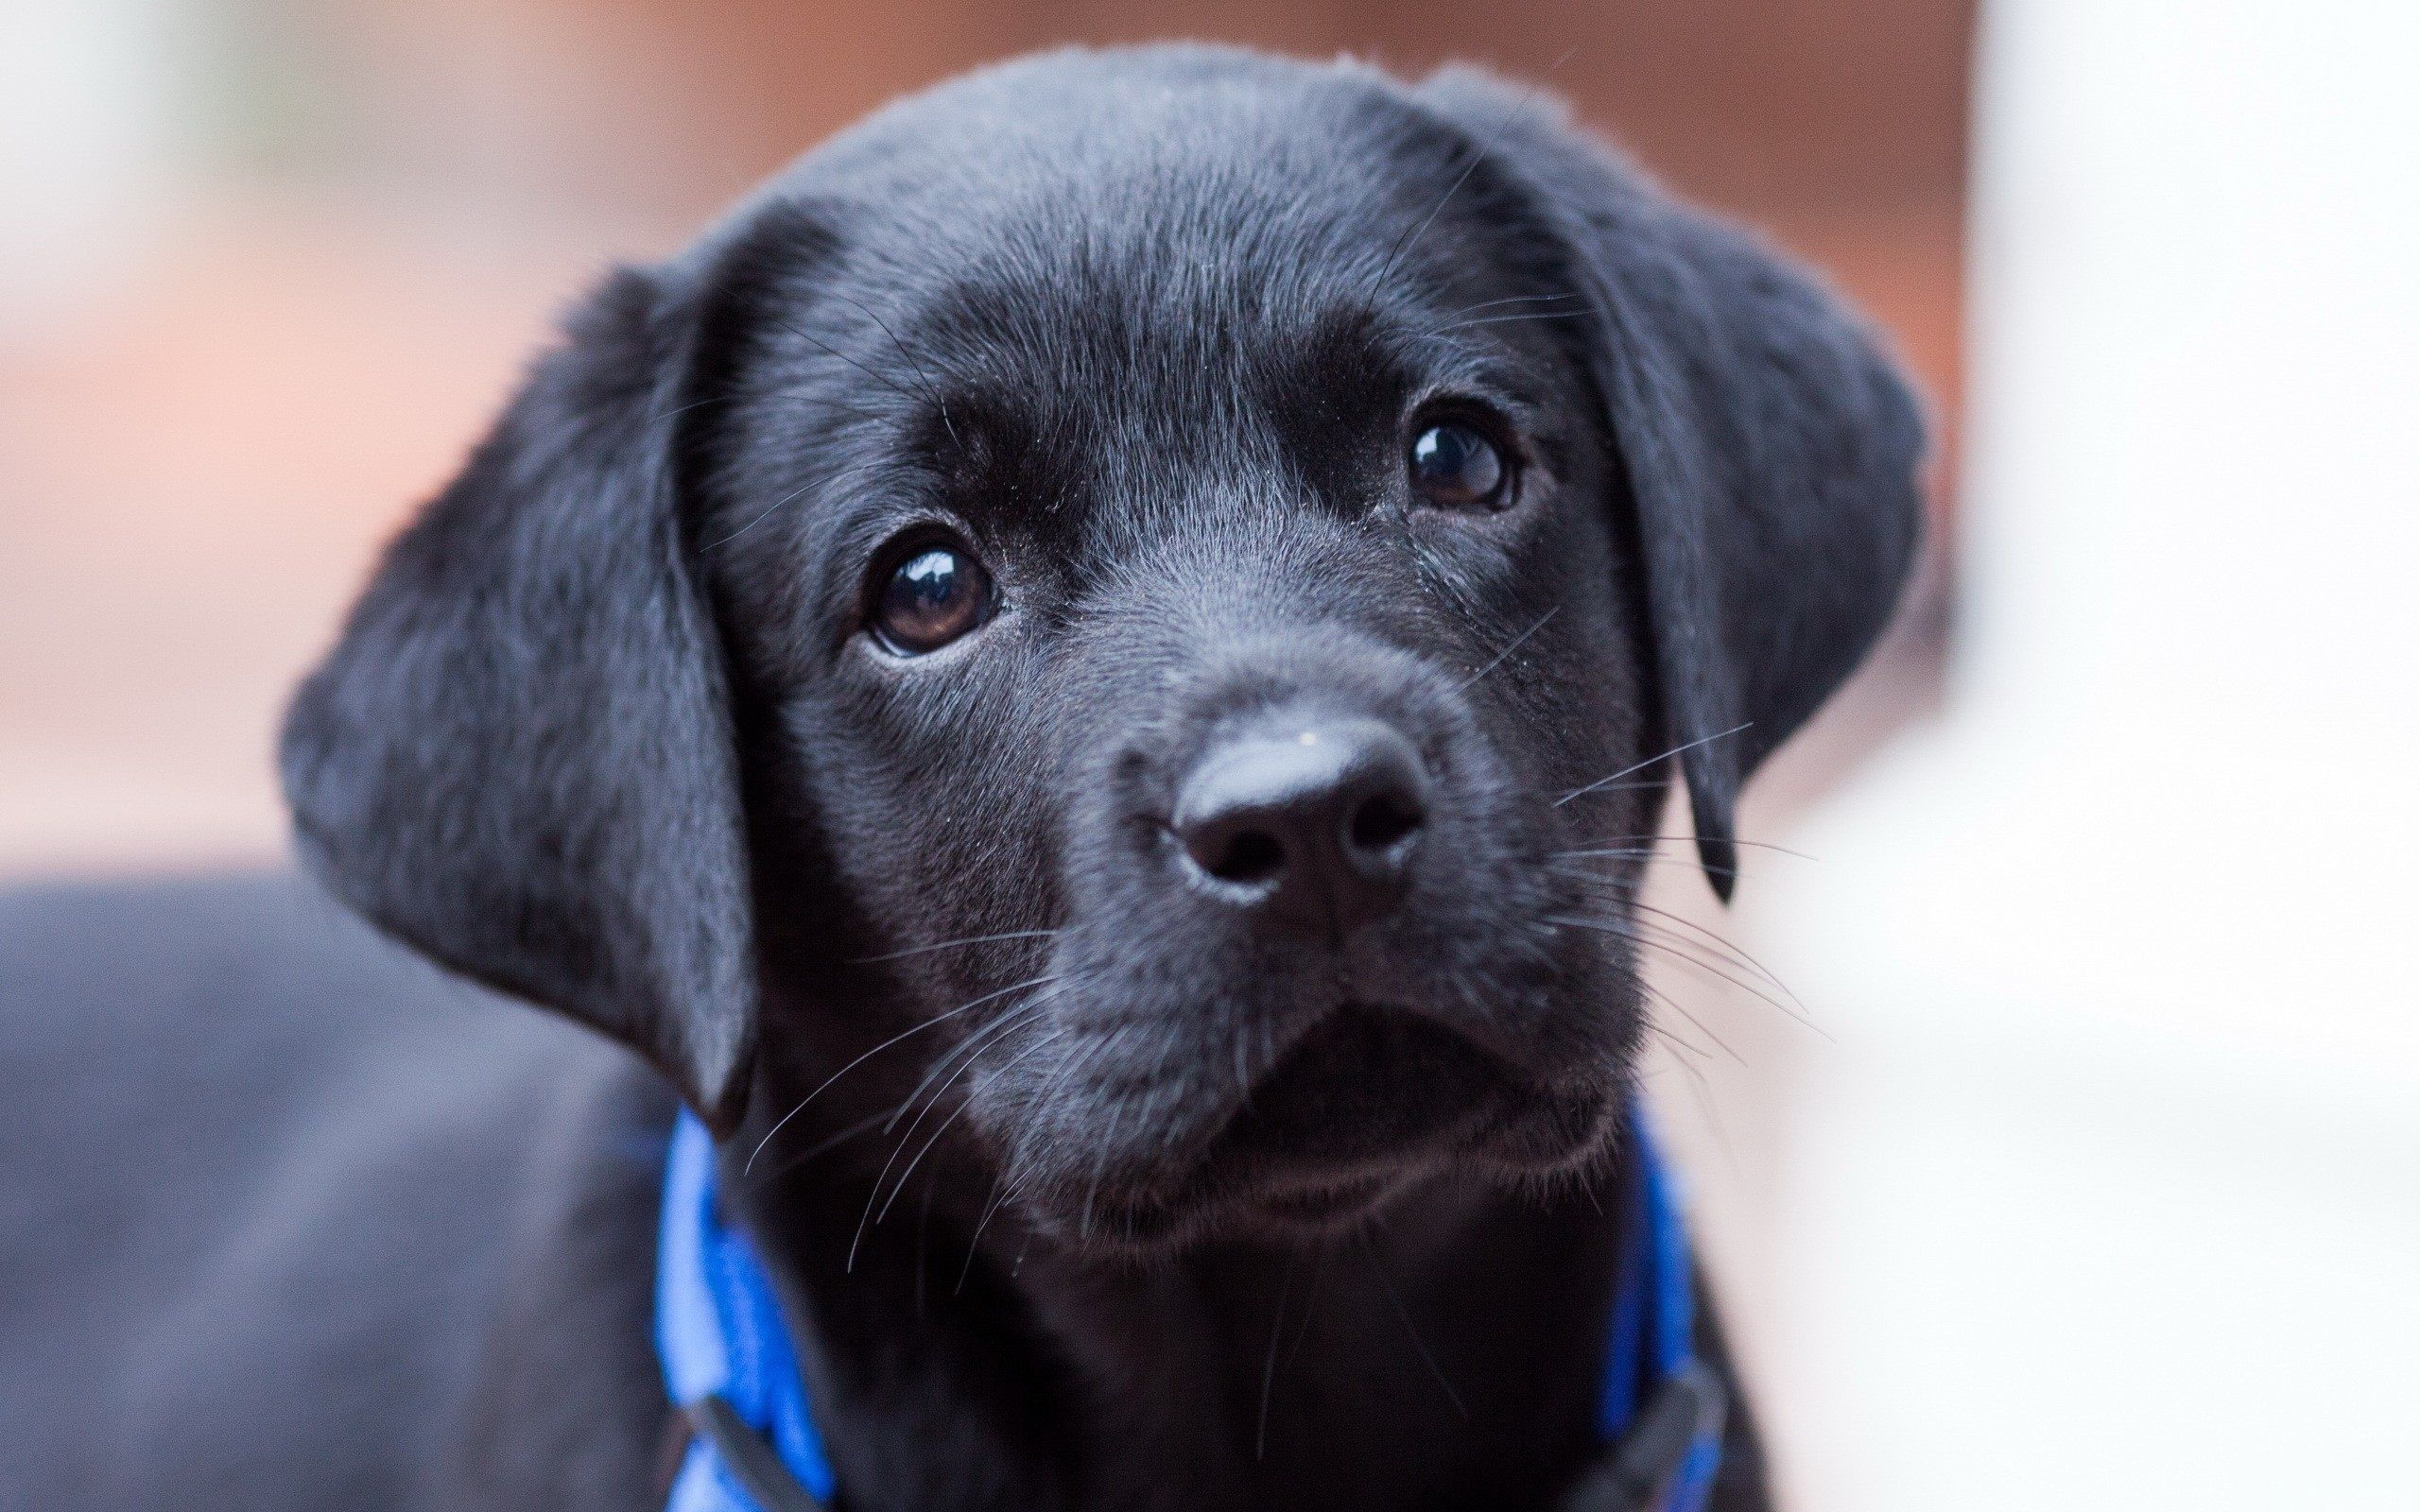 Black Puppy Wallpapers Top Free Black Puppy Backgrounds Wallpaperaccess